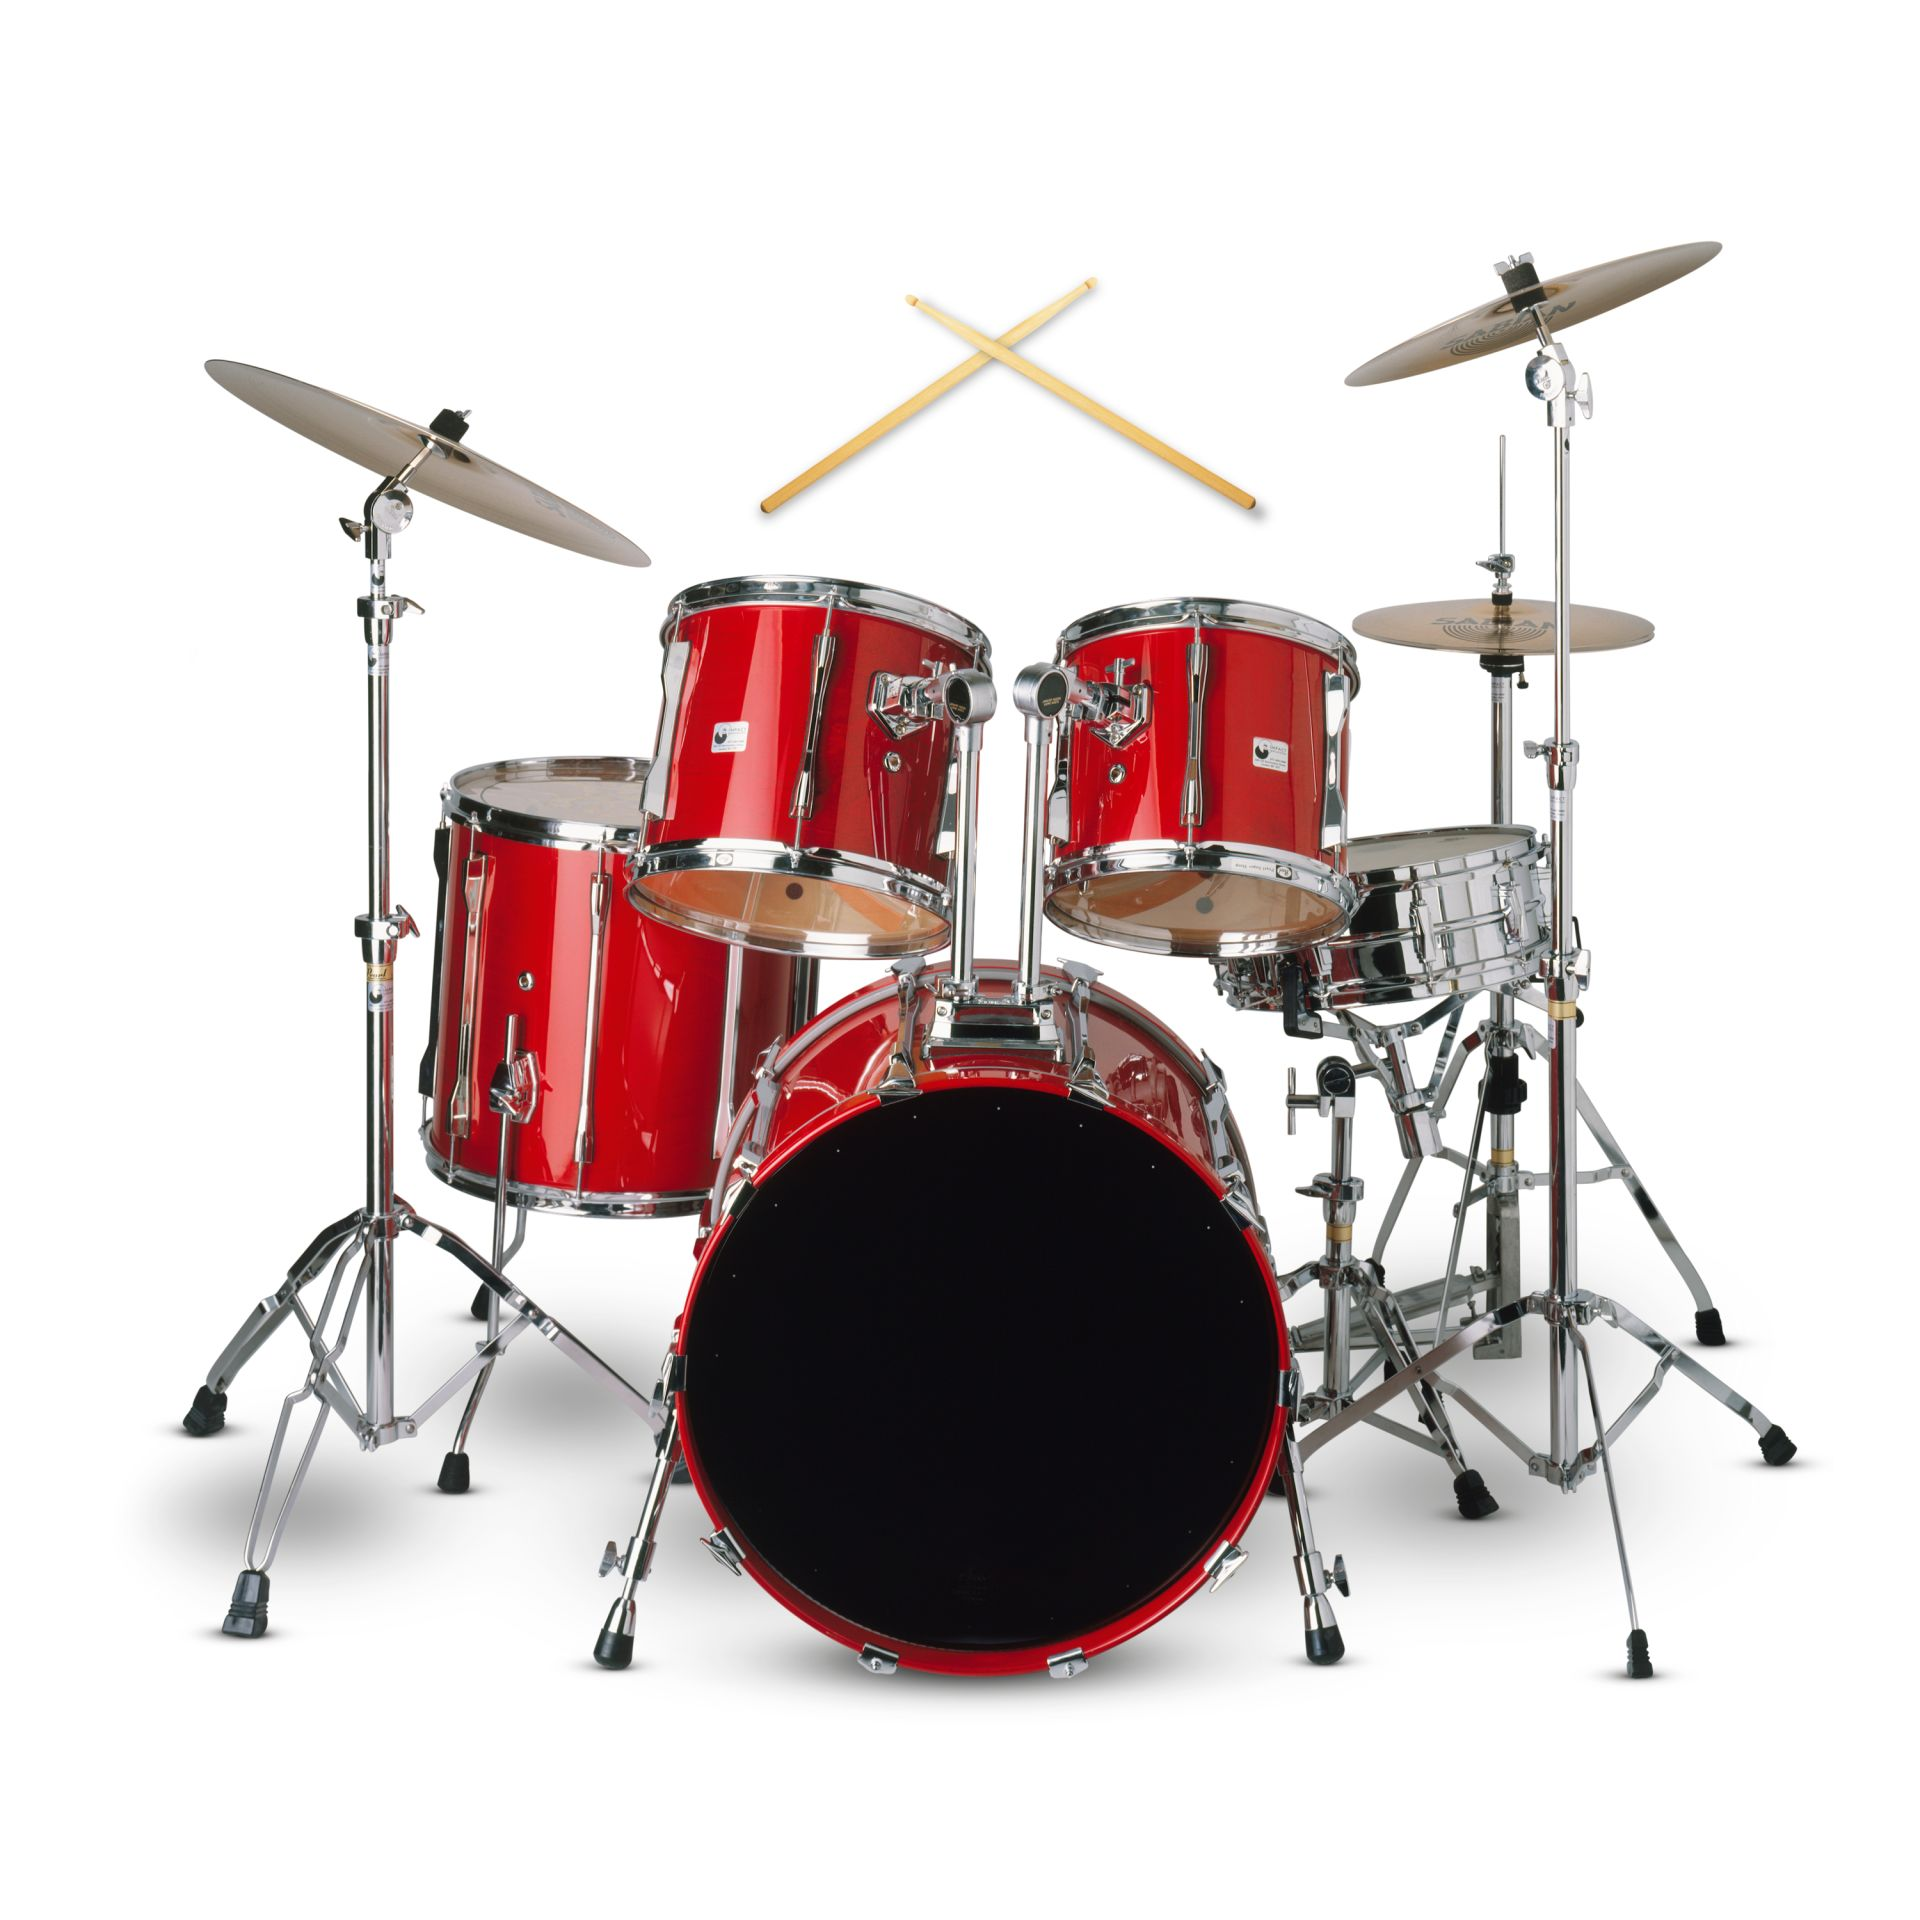 Types Of Drums   Facts About Drums   DK Find Out